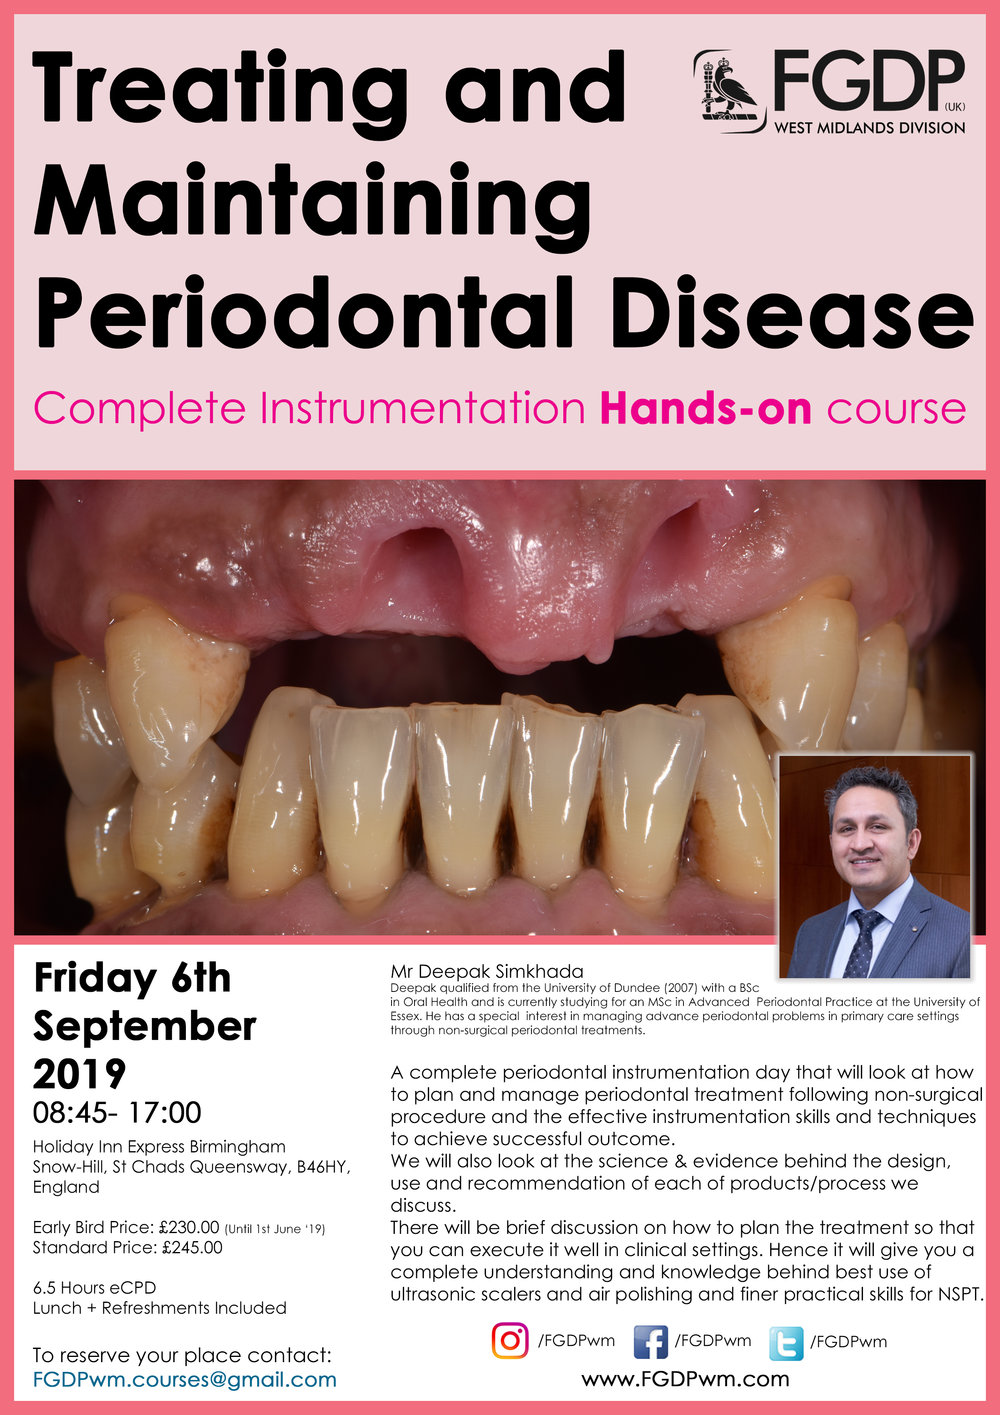 Treating and Maintaining Periodontal Disease – Complete Instrumentations Hands-on course V2.0.jpg